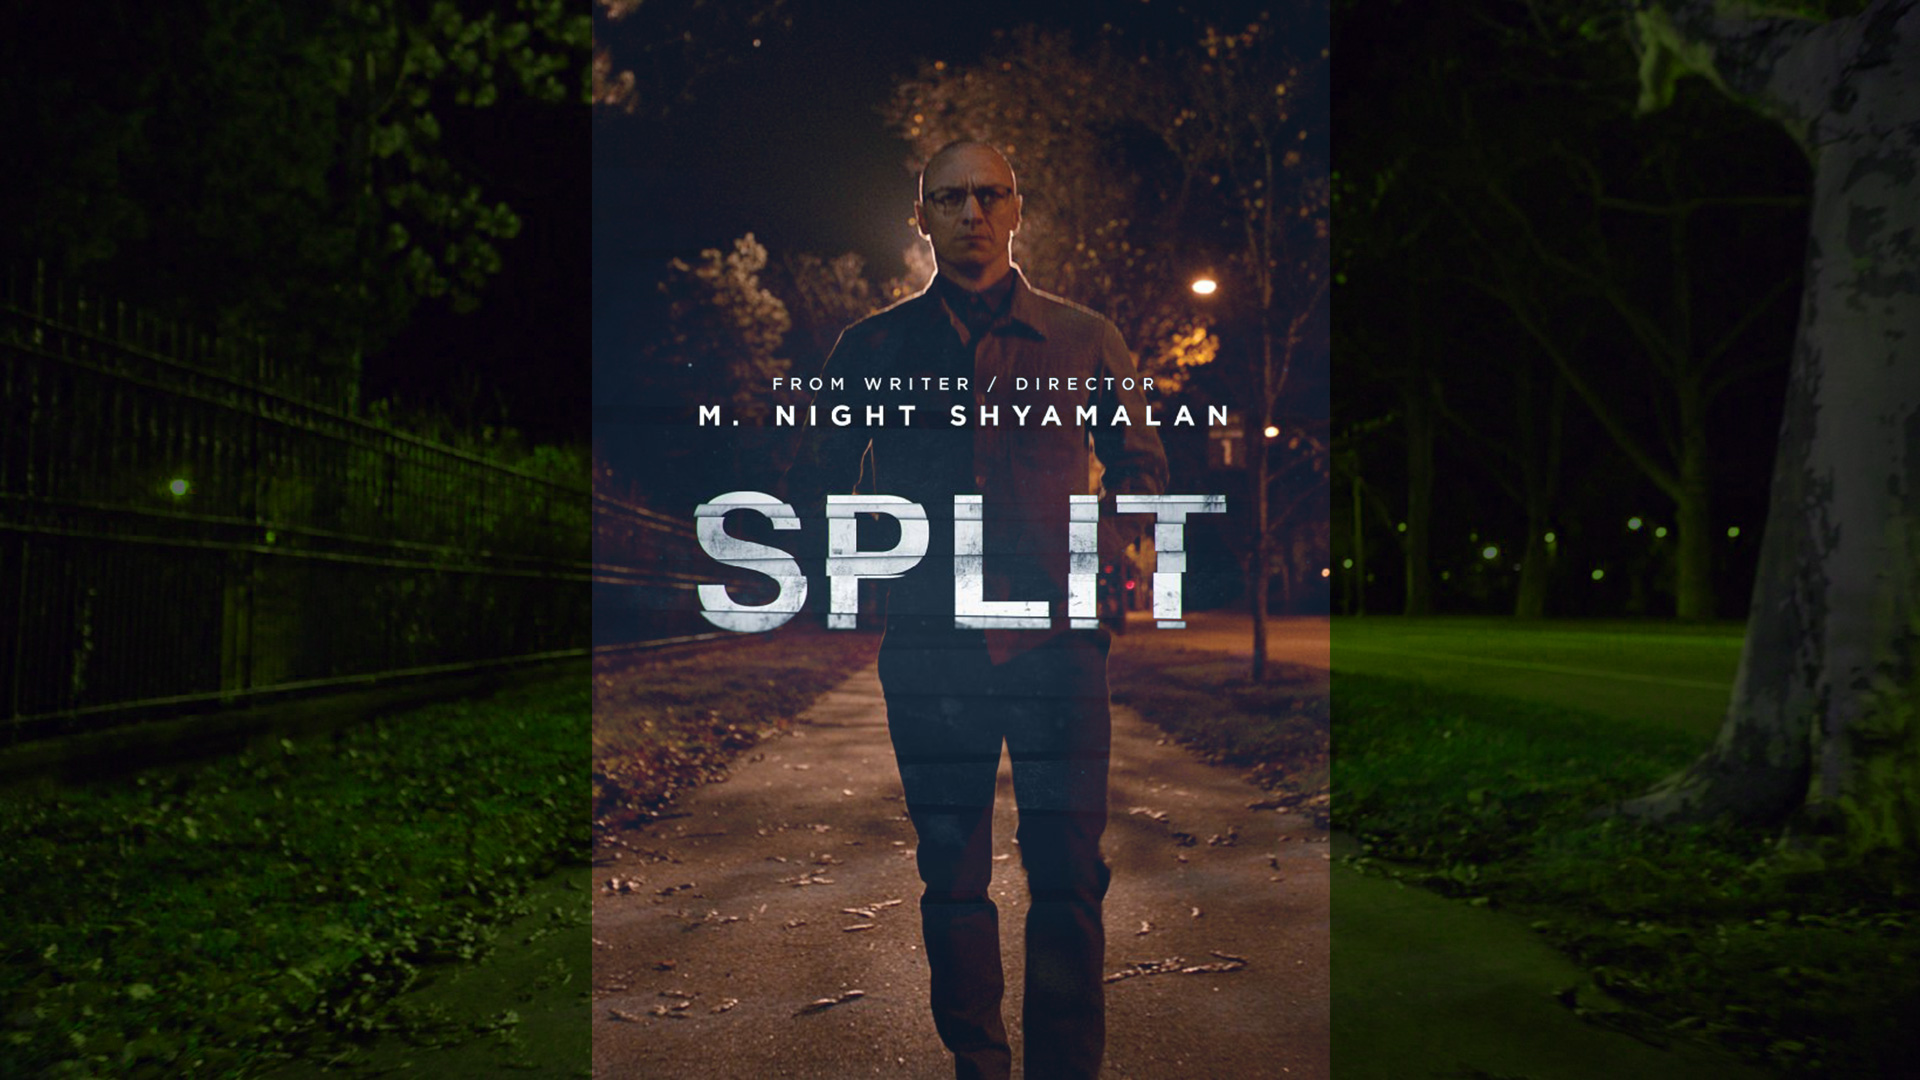 split-movie-wallpaper-hd-film-2017-poster-image.jpg